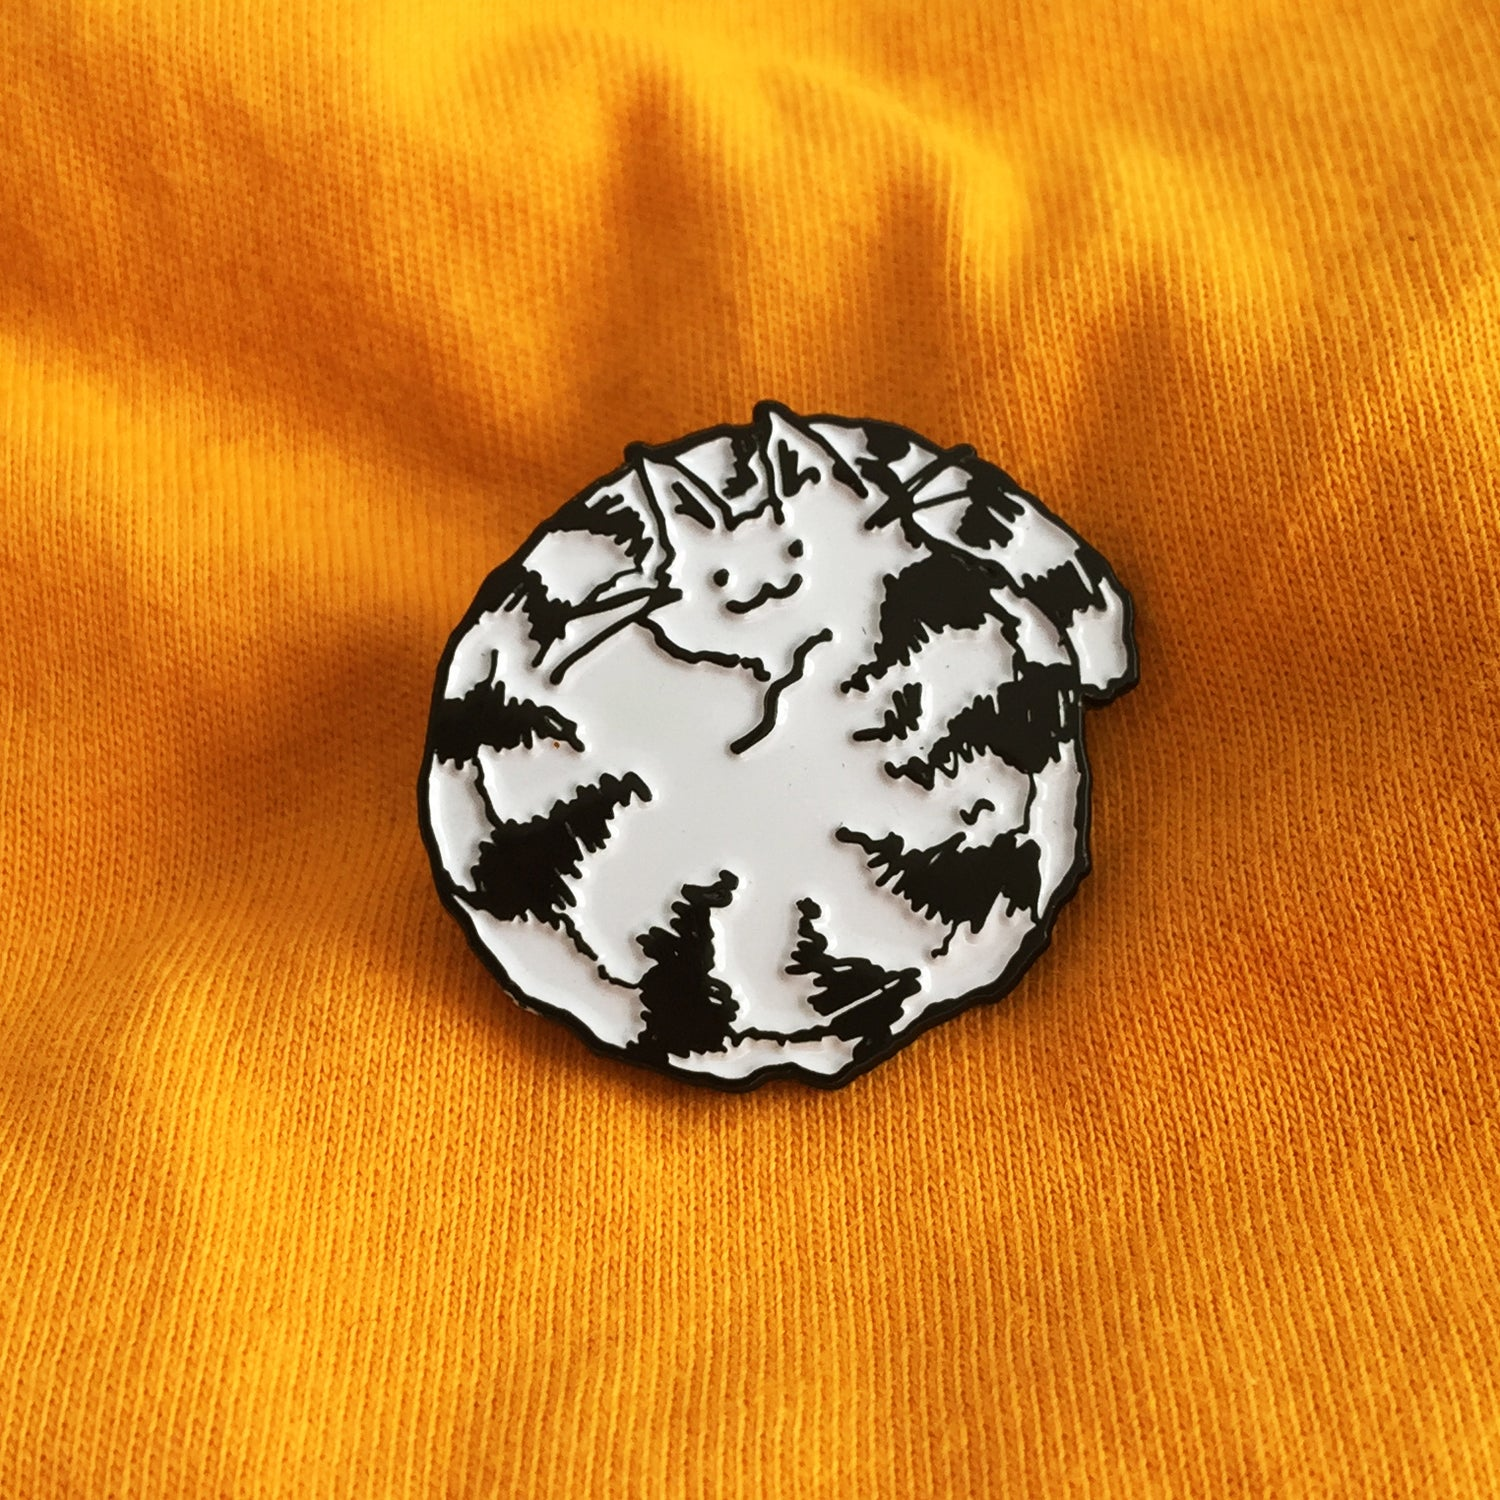 Being Curled Up Looks Like Fun Enamel Pin